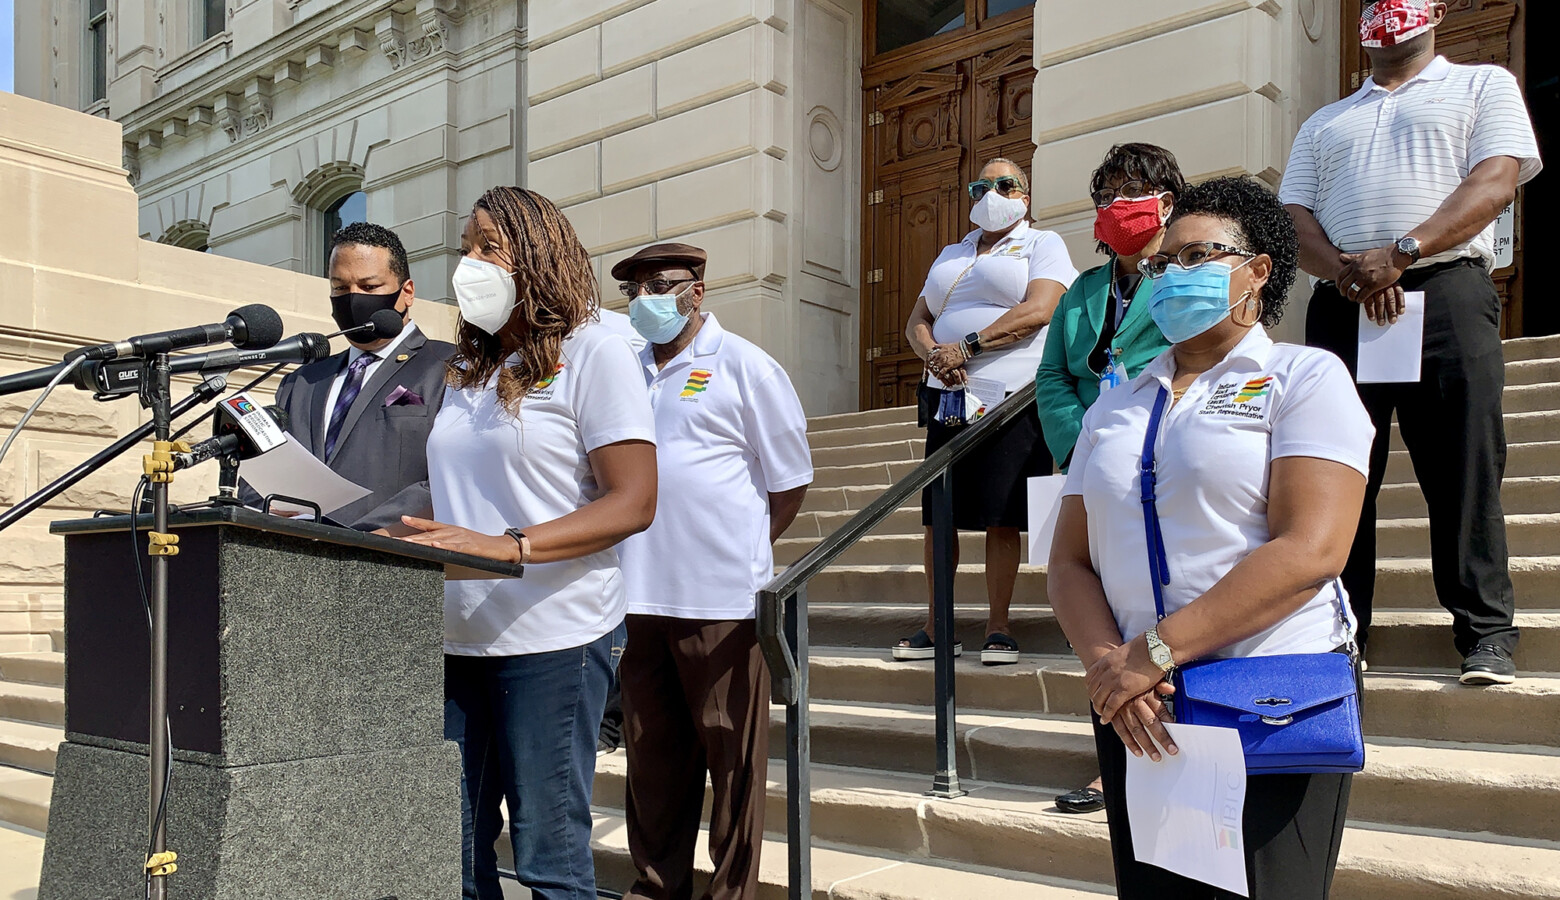 The Indiana Black Legislative Caucus wants Governor Eric Holcomb to ban the use of chokeholds by police during arrests, one of a series of actions the caucus recommended to address justice reform. (Brandon Smith/IPB News)